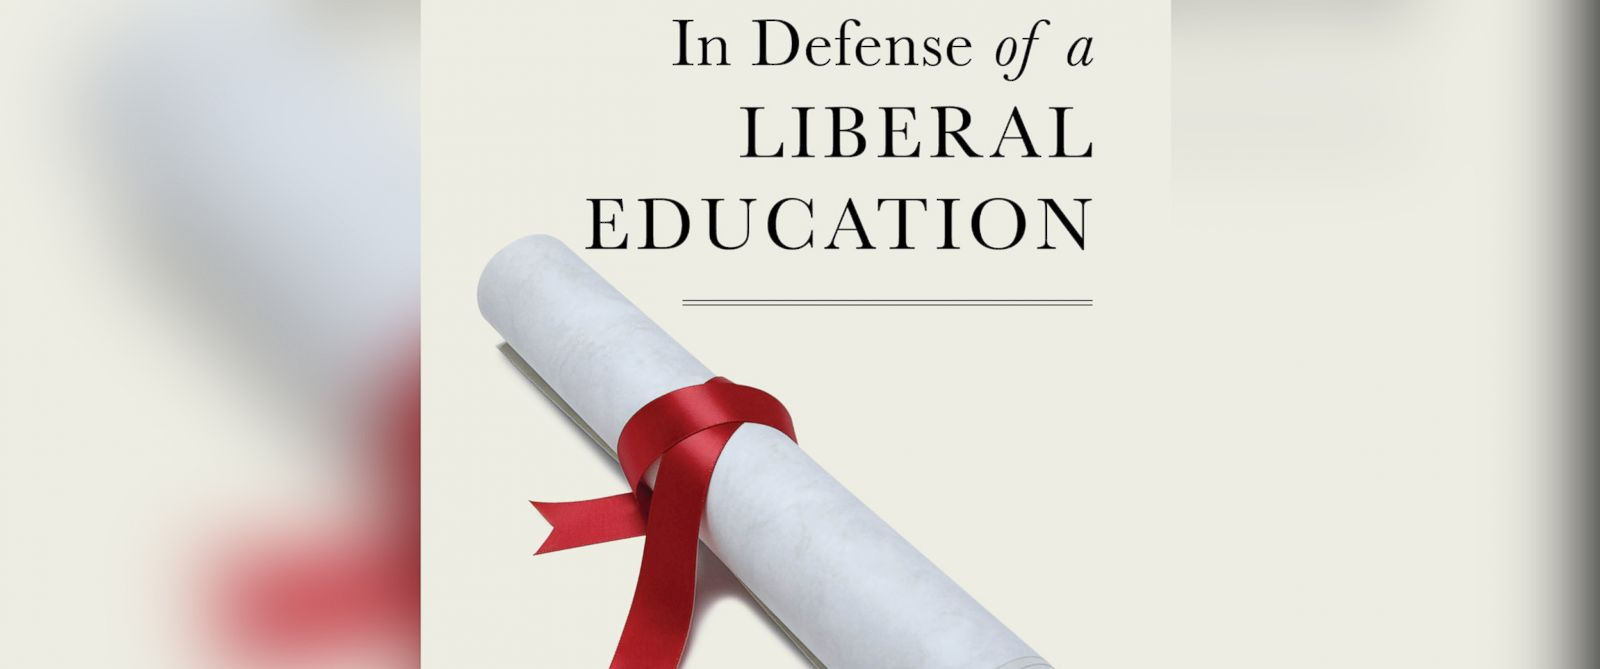 Liberal and Conservative views on Education?